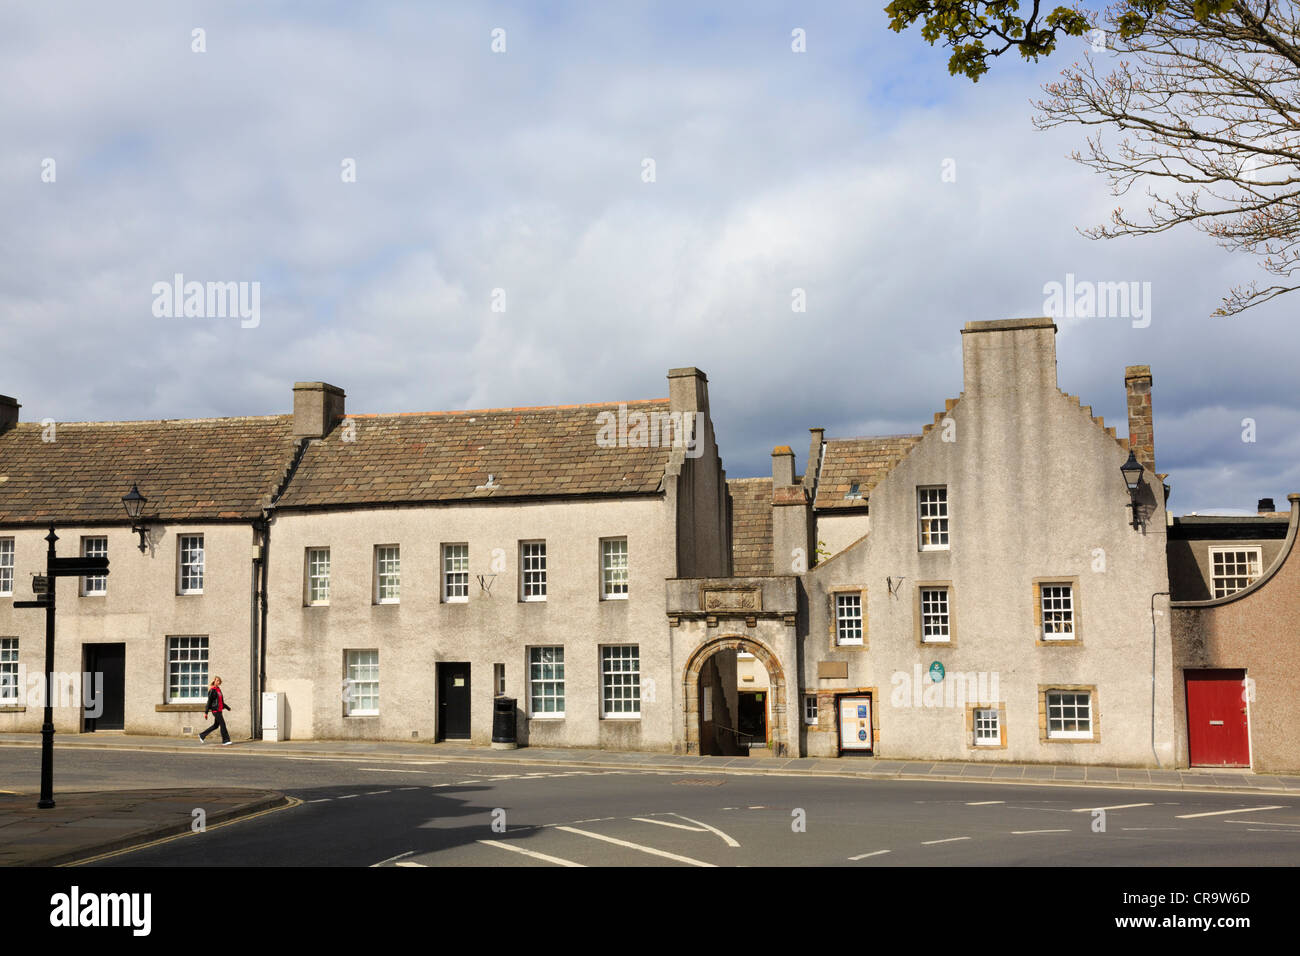 Orkney Museum in 16th century Tankerness House in Broad Street, Kirkwall, Orkney Islands, Scotland, UK. - Stock Image